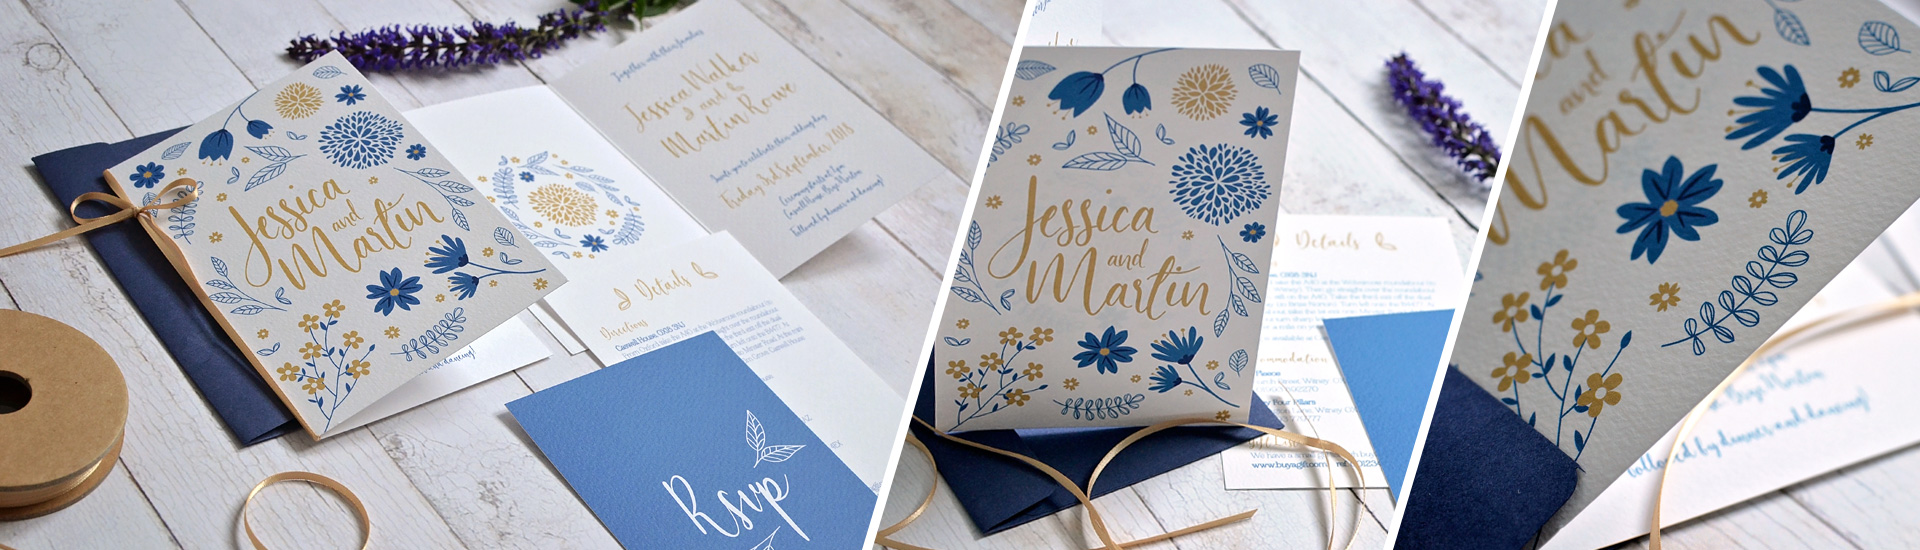 Simple floral wedding invitation and stationery